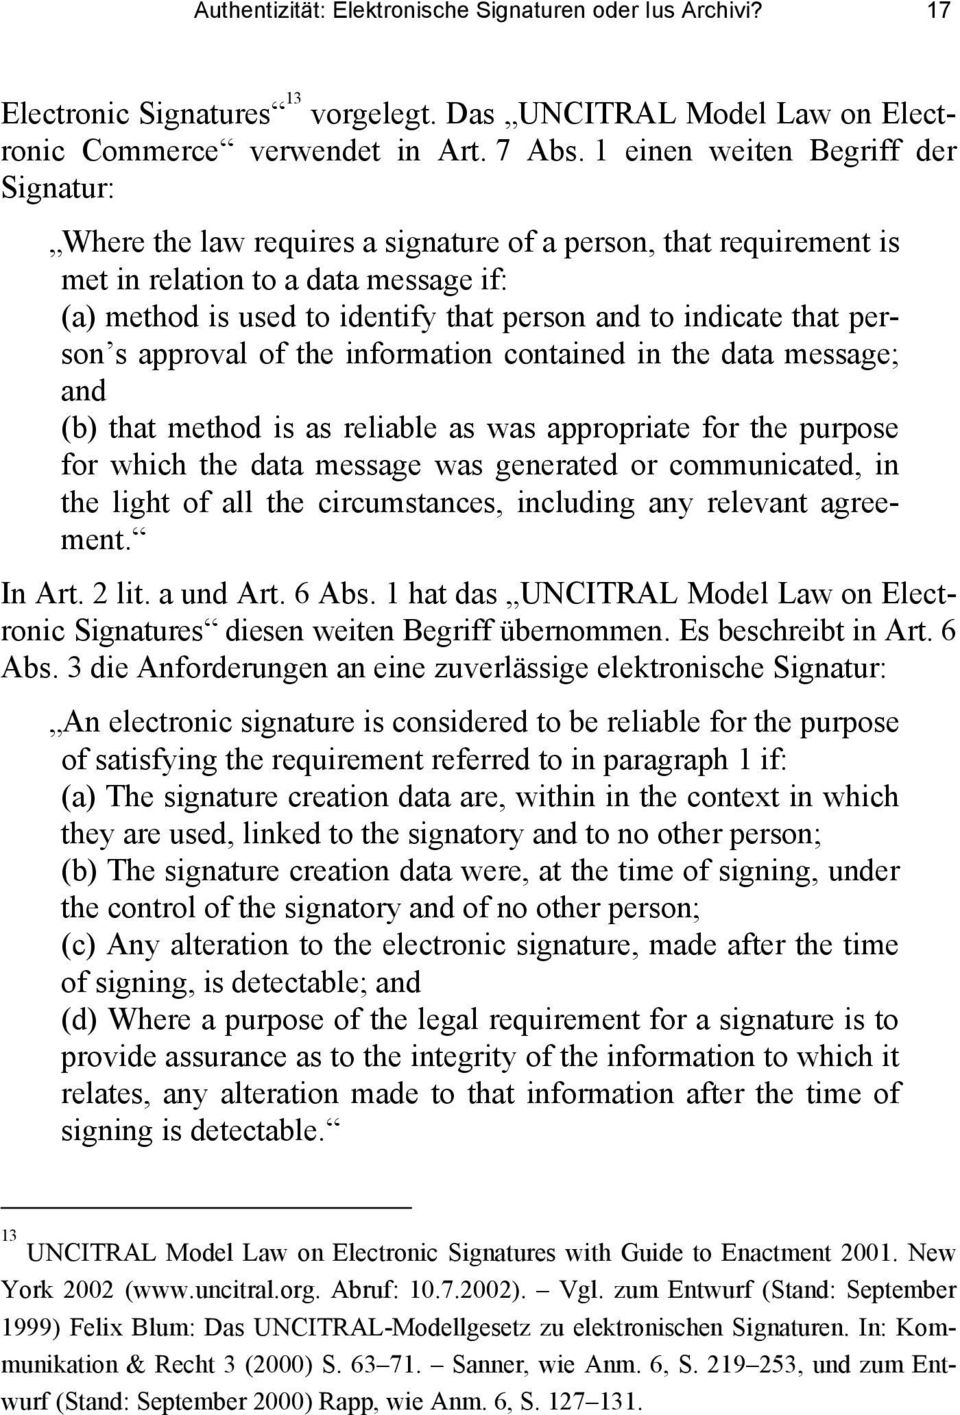 indicate that person s approval of the information contained in the data message; and (b) that method is as reliable as was appropriate for the purpose for which the data message was generated or